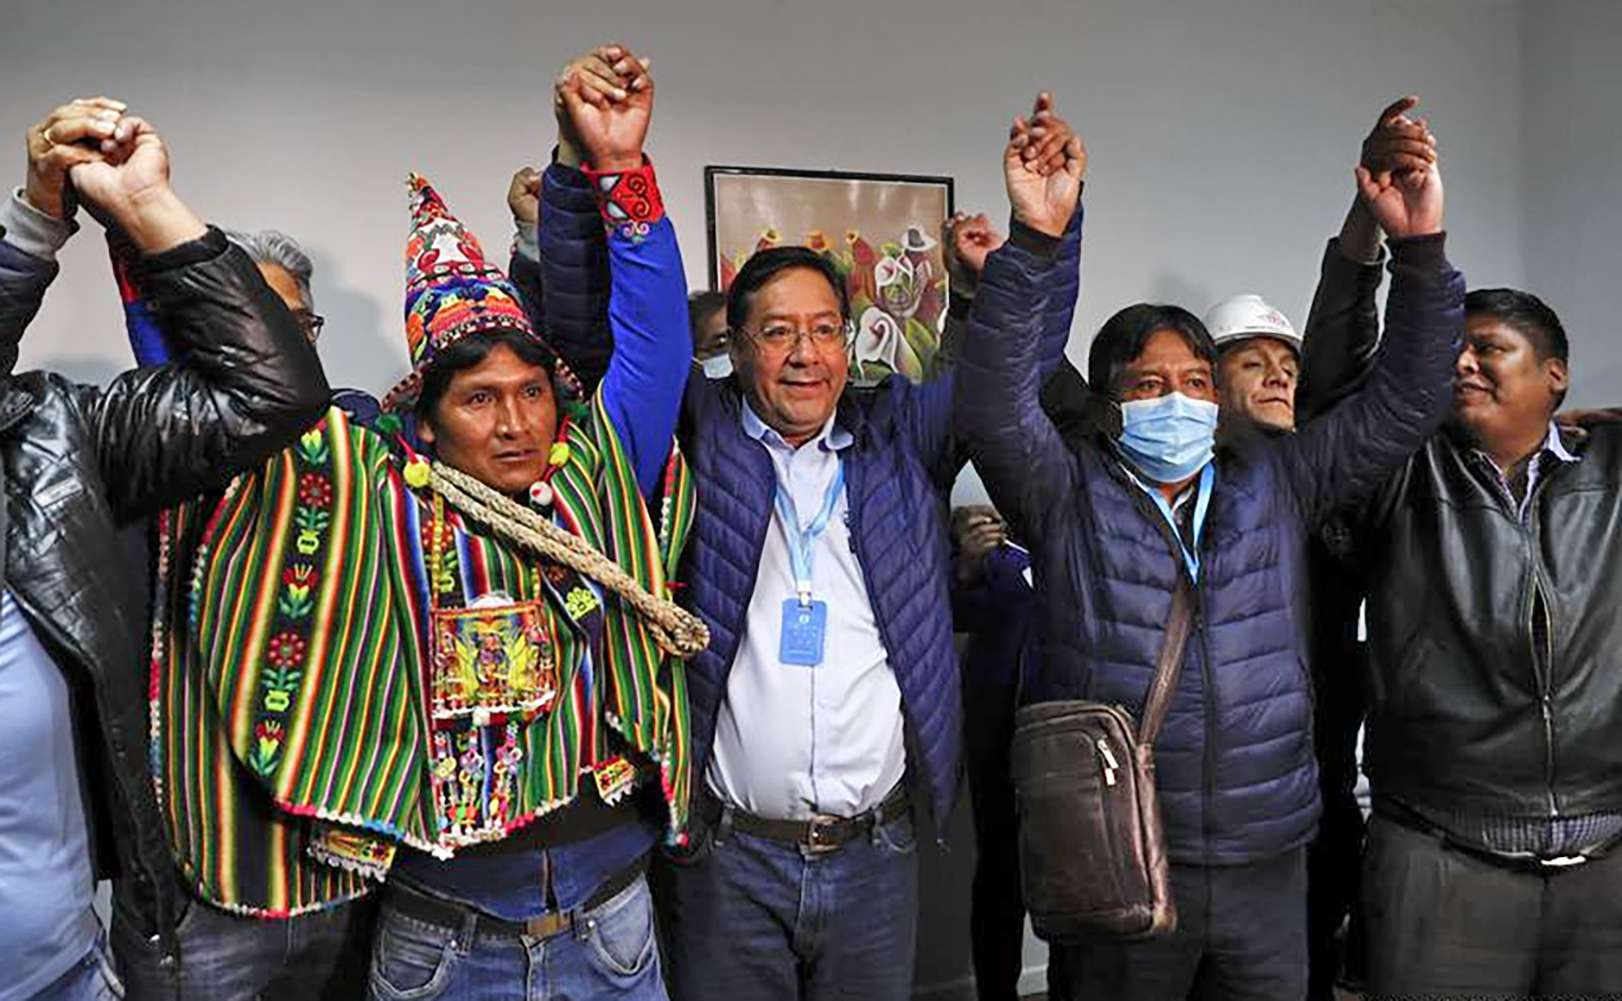 Bolivian election exit polls show socialist candidate ahead Τα exit polls στη Βολιβία βγάζουν νικητές Morales Luis Arce